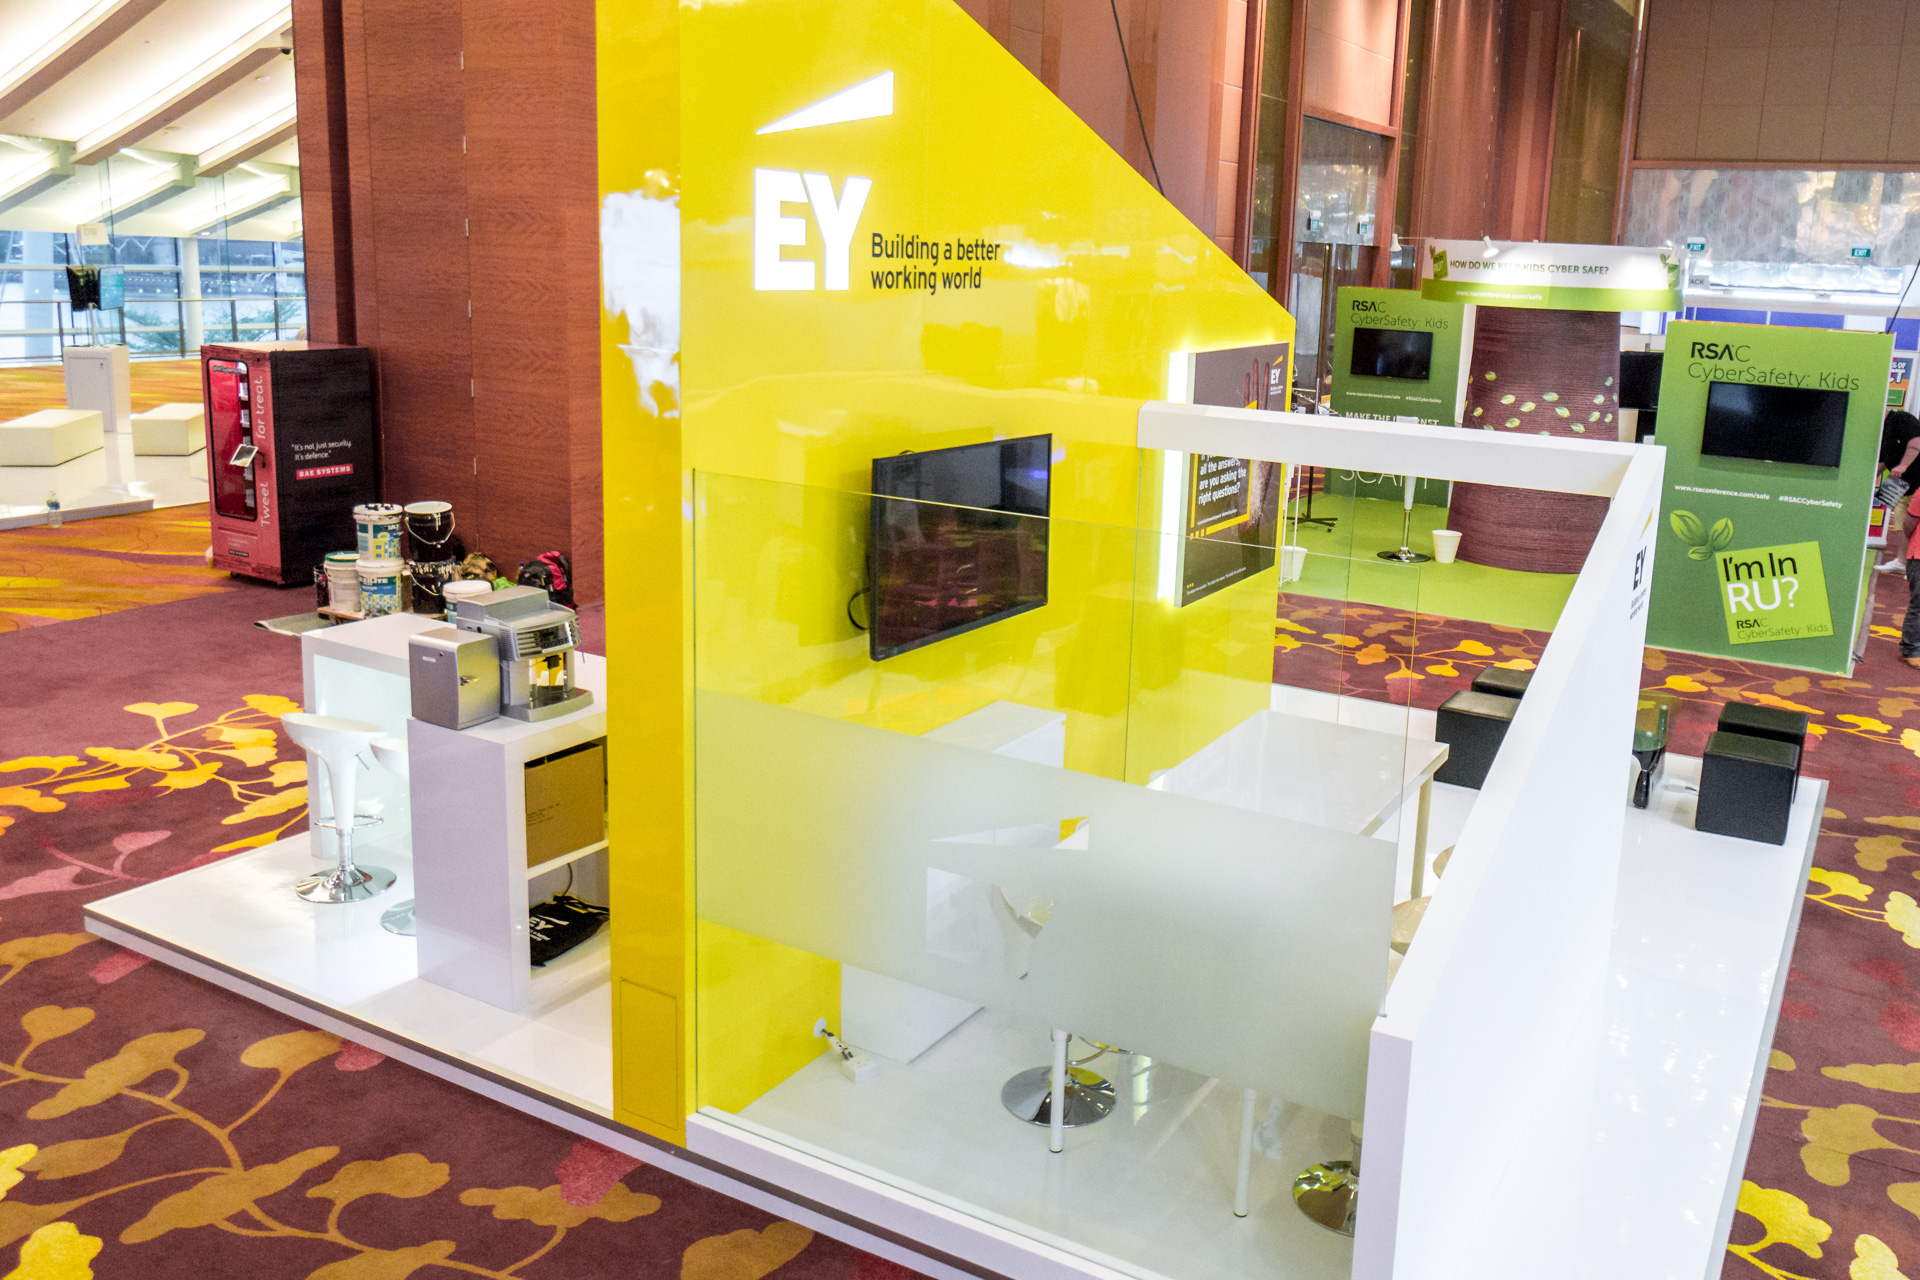 Exhibition Stand Design Process : Ey exhibition booth punktlandung events exhibitions